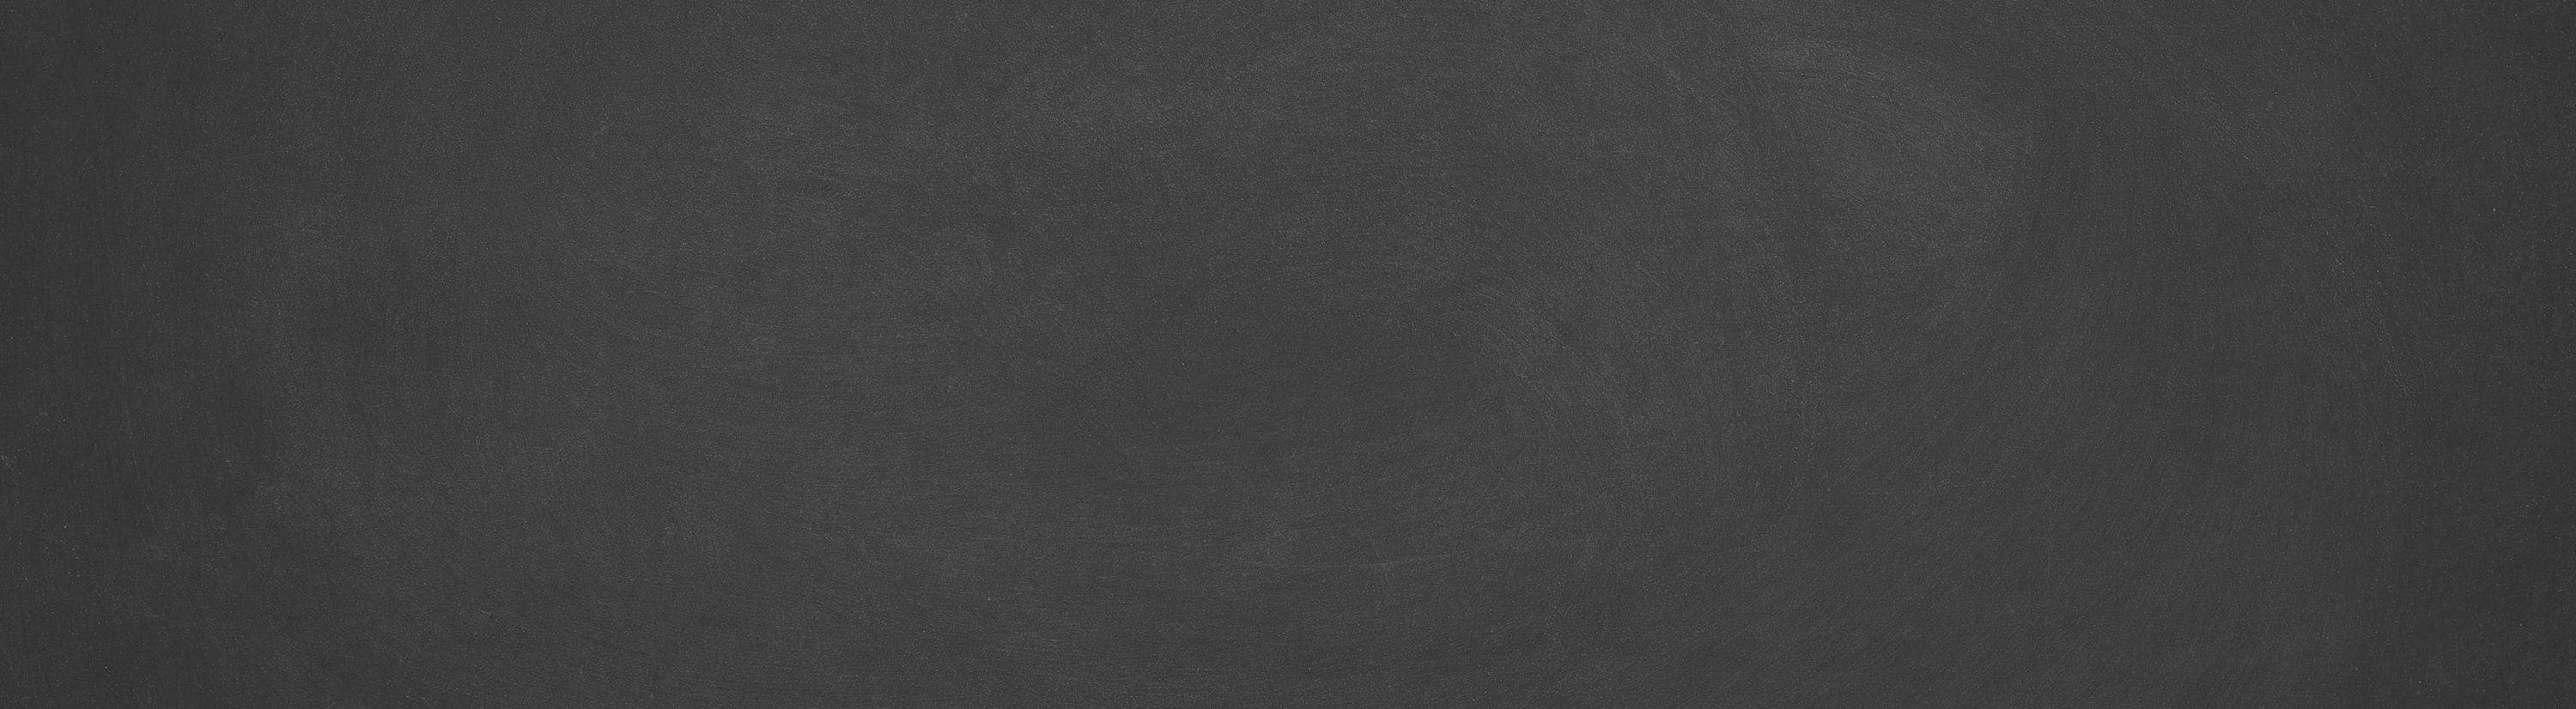 Decoration: Black Chalk Board